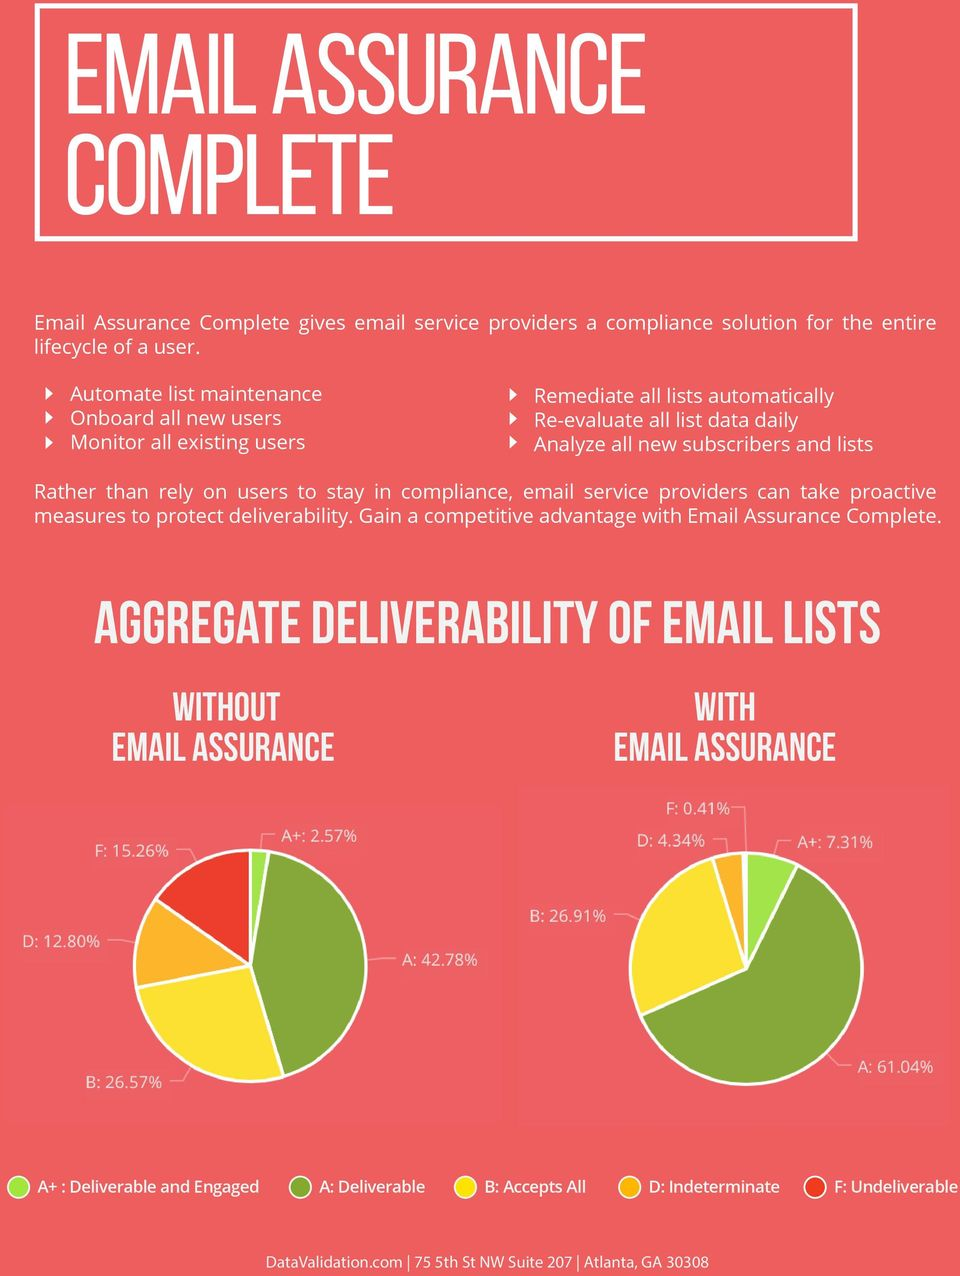 and lists Rather than rely on users to stay in compliance, email service providers can take proactive measures to protect deliverability.